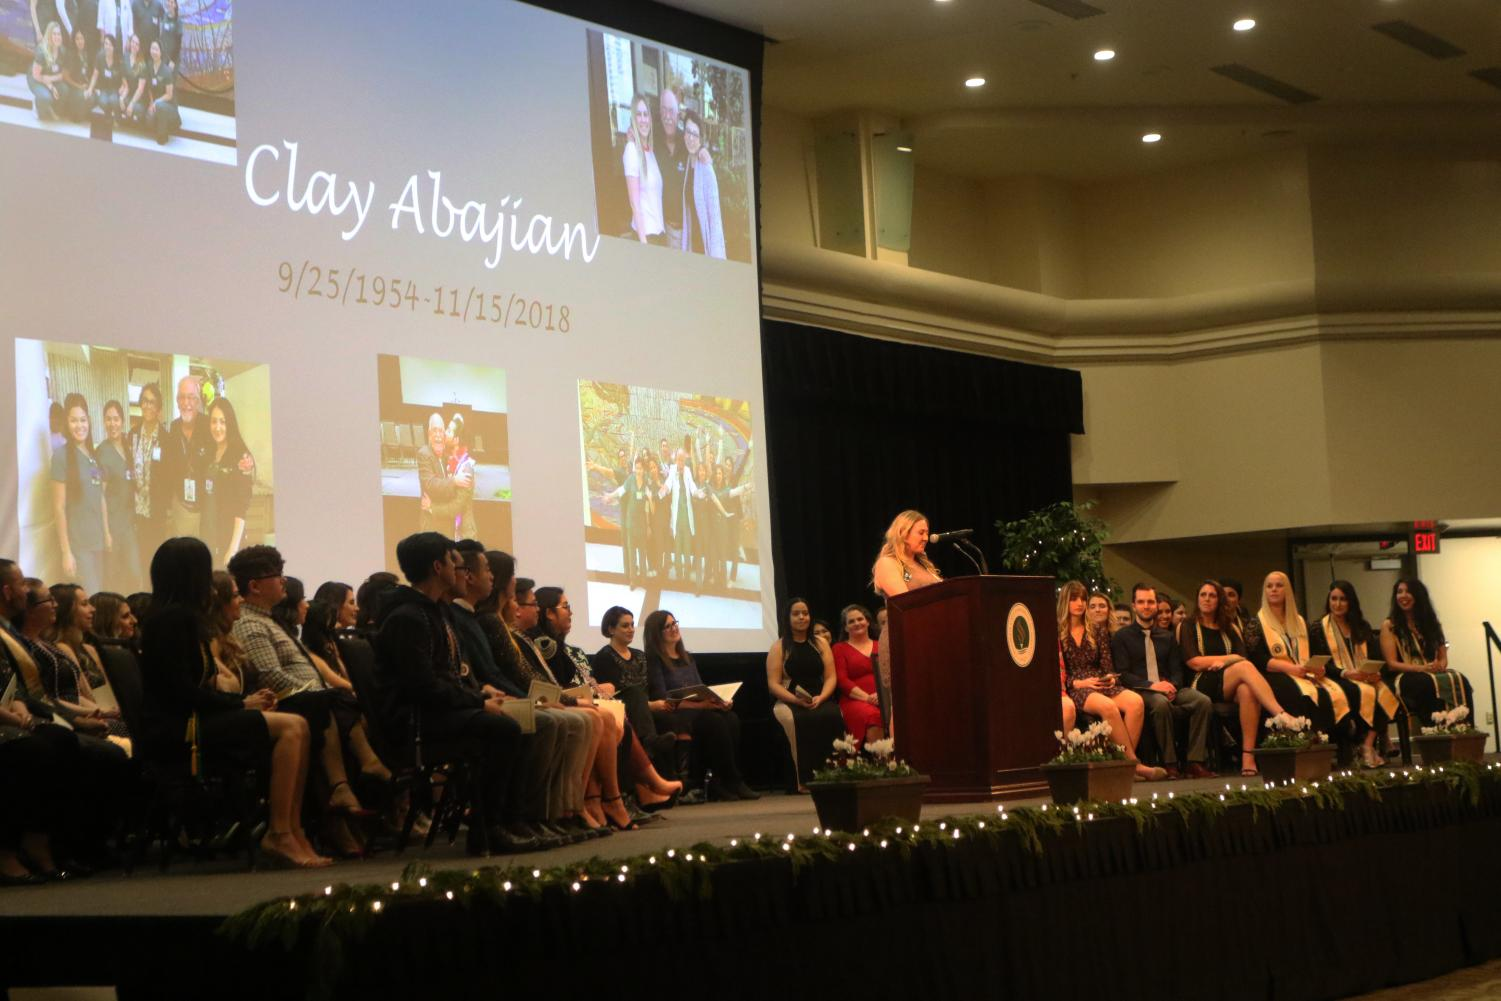 Annie Mantsch reads an in memoriam speech in honor of nursing instructor Clay Abajian at Sacramento State's School of Nursing pinning ceremony Thursday in the University Union Ballroom. Abajian was one of two fatalities in a Nov. 15 plane crash in Redding, California.